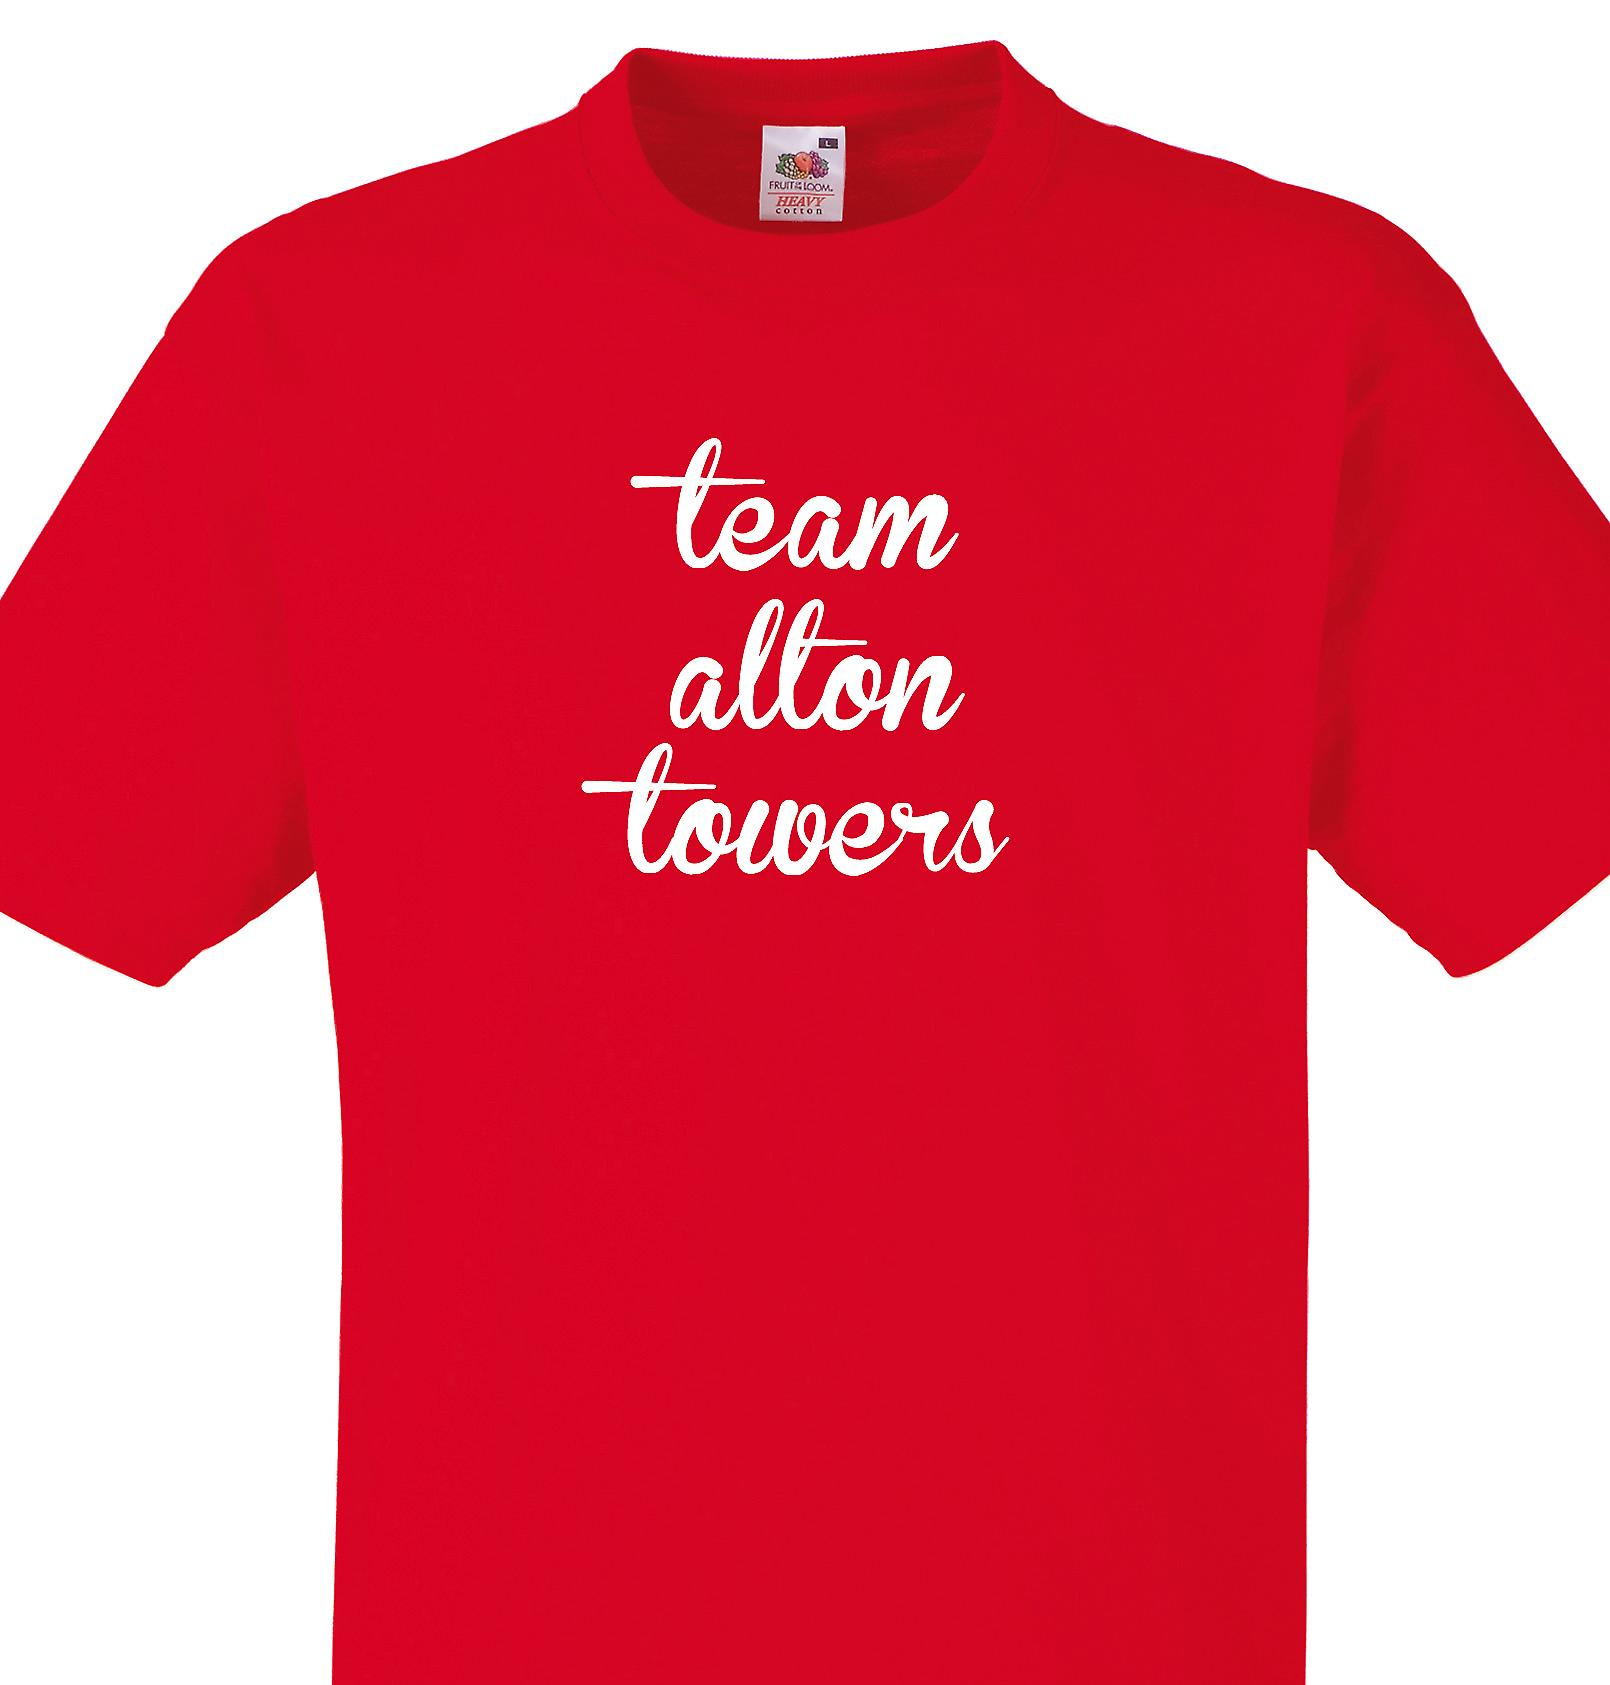 Team Alton towers Red T shirt